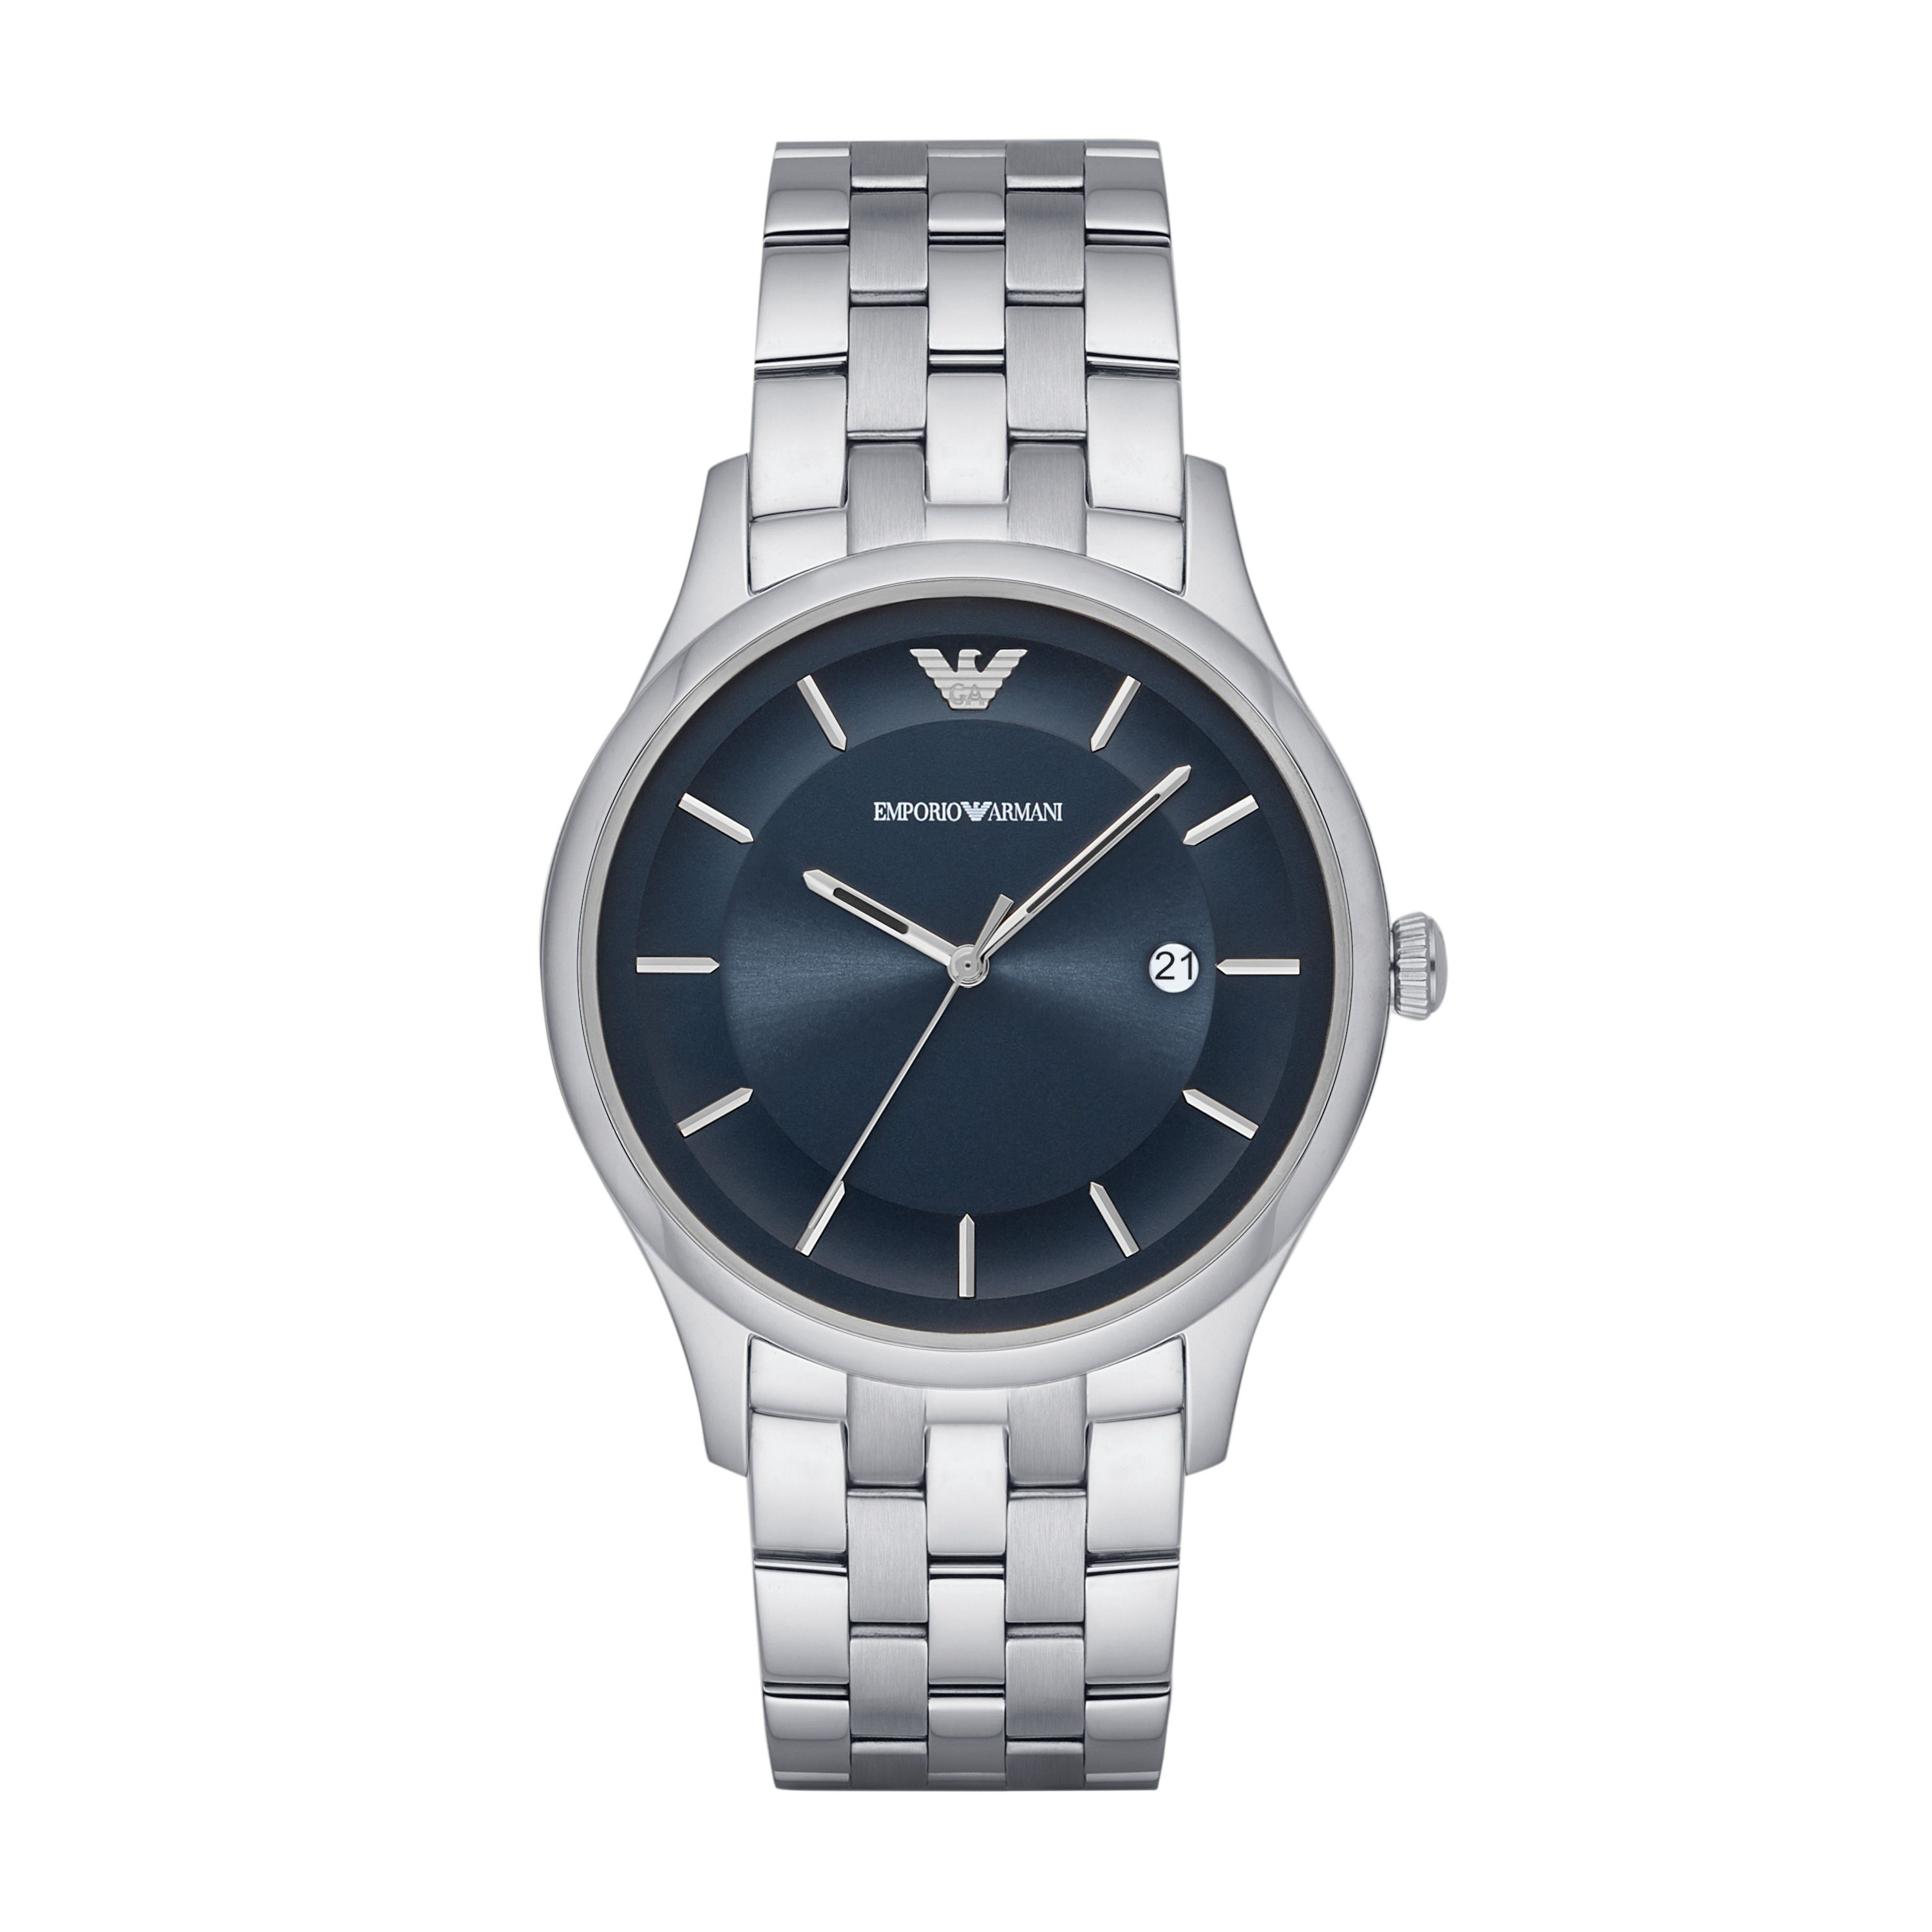 emporio armani watches at house of fraser emporio armani ar11019 mens bracelet watch